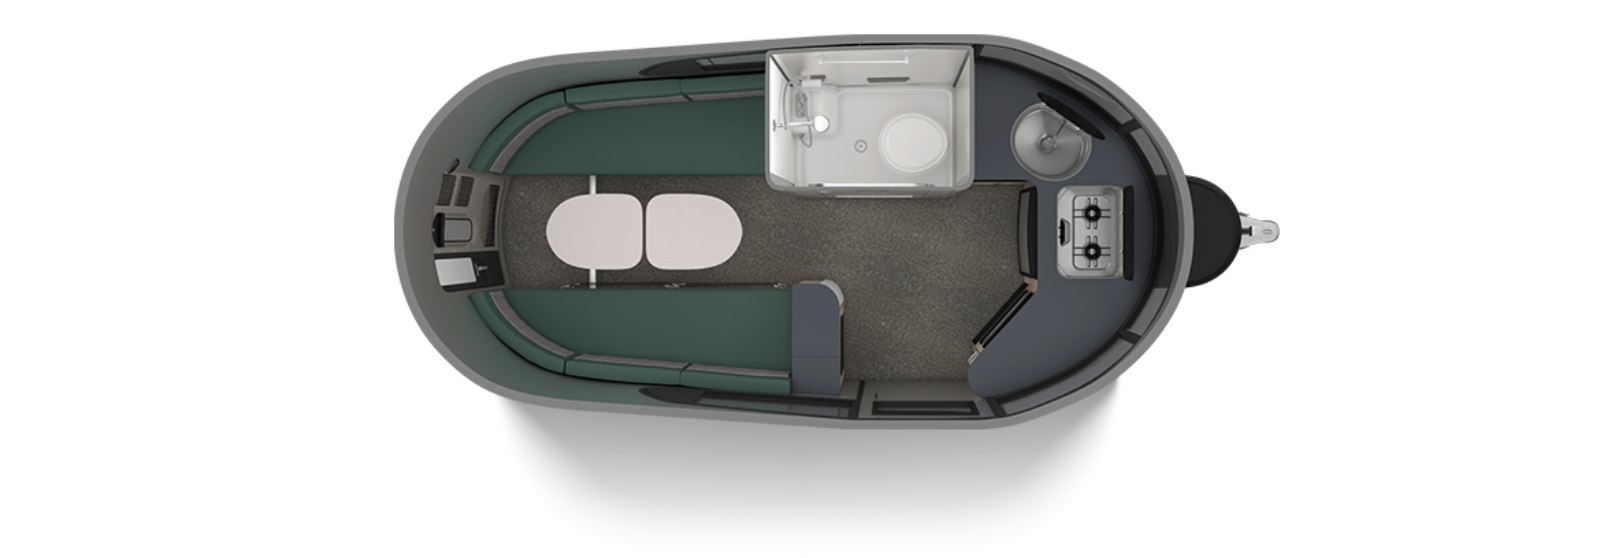 Airstream-Basecamp-Forest-Ridge-Floor-Plan